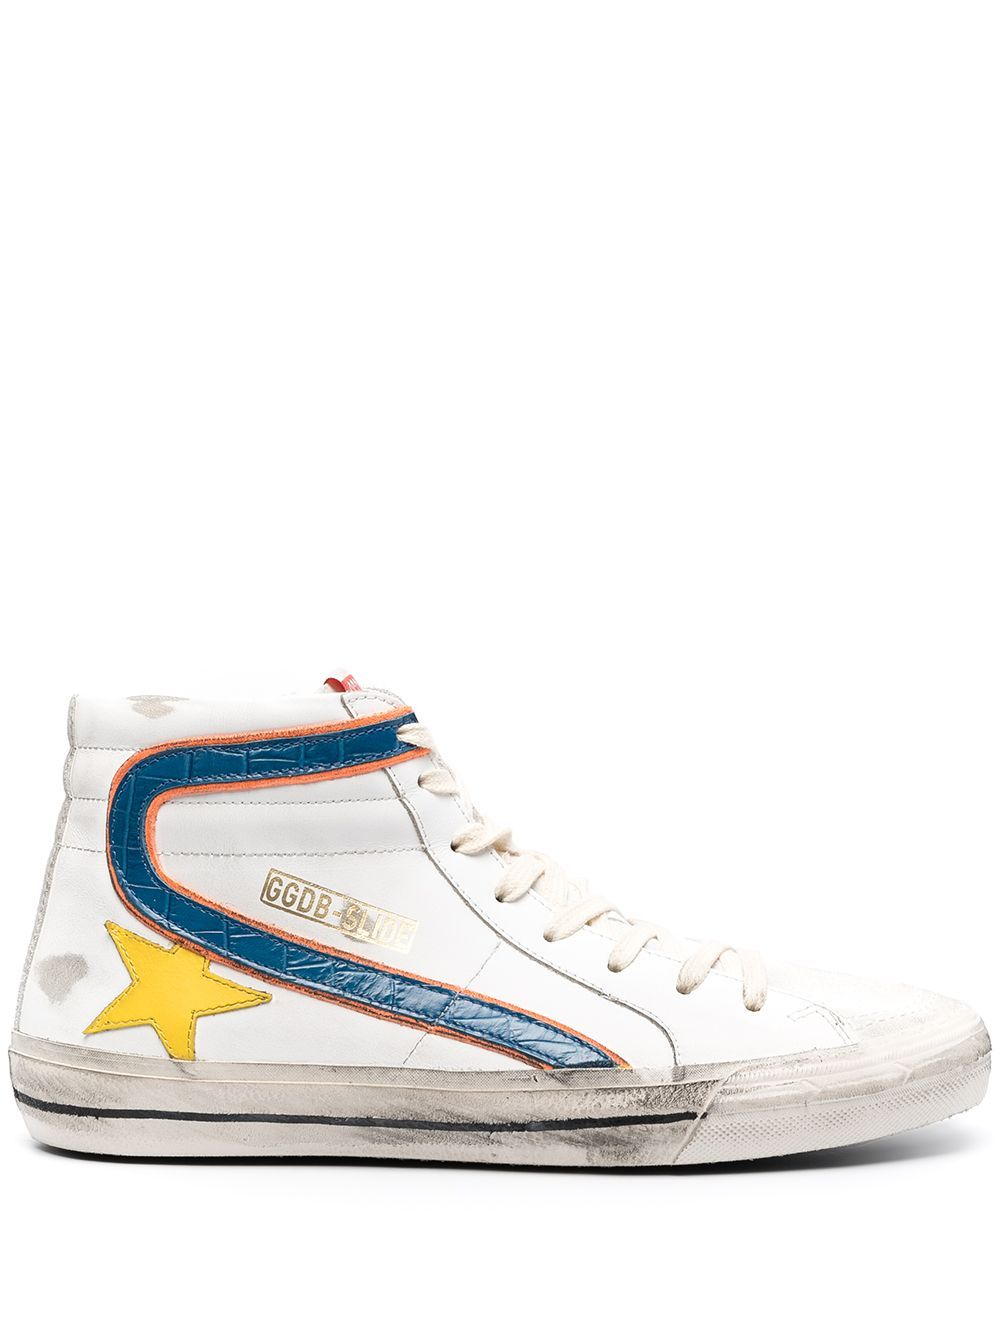 Golden Goose Leathers GOLDEN GOOSE MEN'S GMF00115F00112210508 WHITE LEATHER HI TOP SNEAKERS